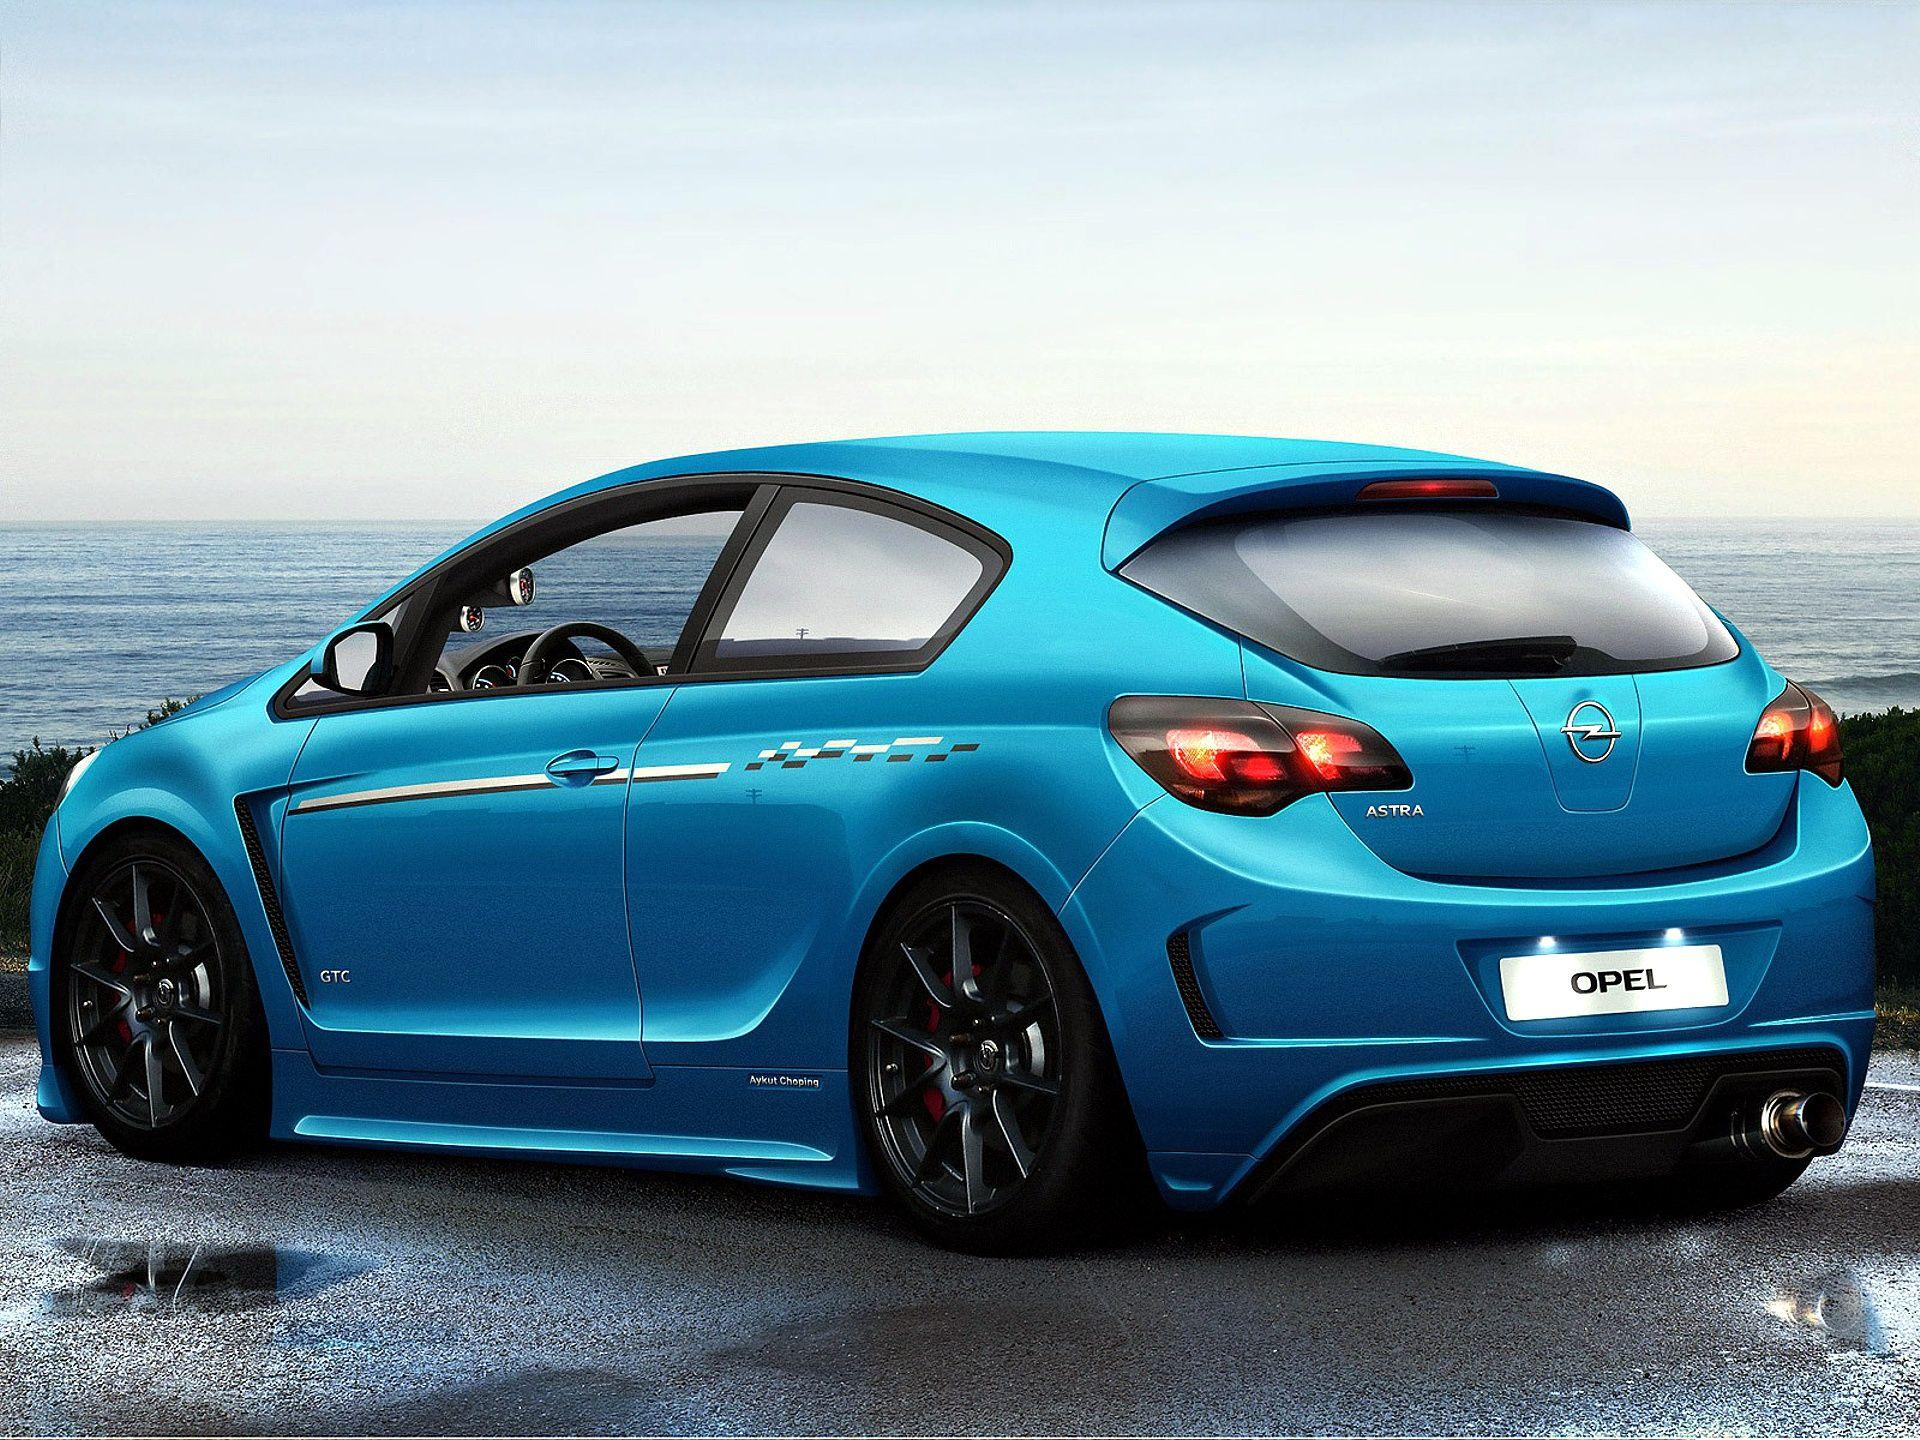 Opel astra coupe gtc, wallpapers backgrounds